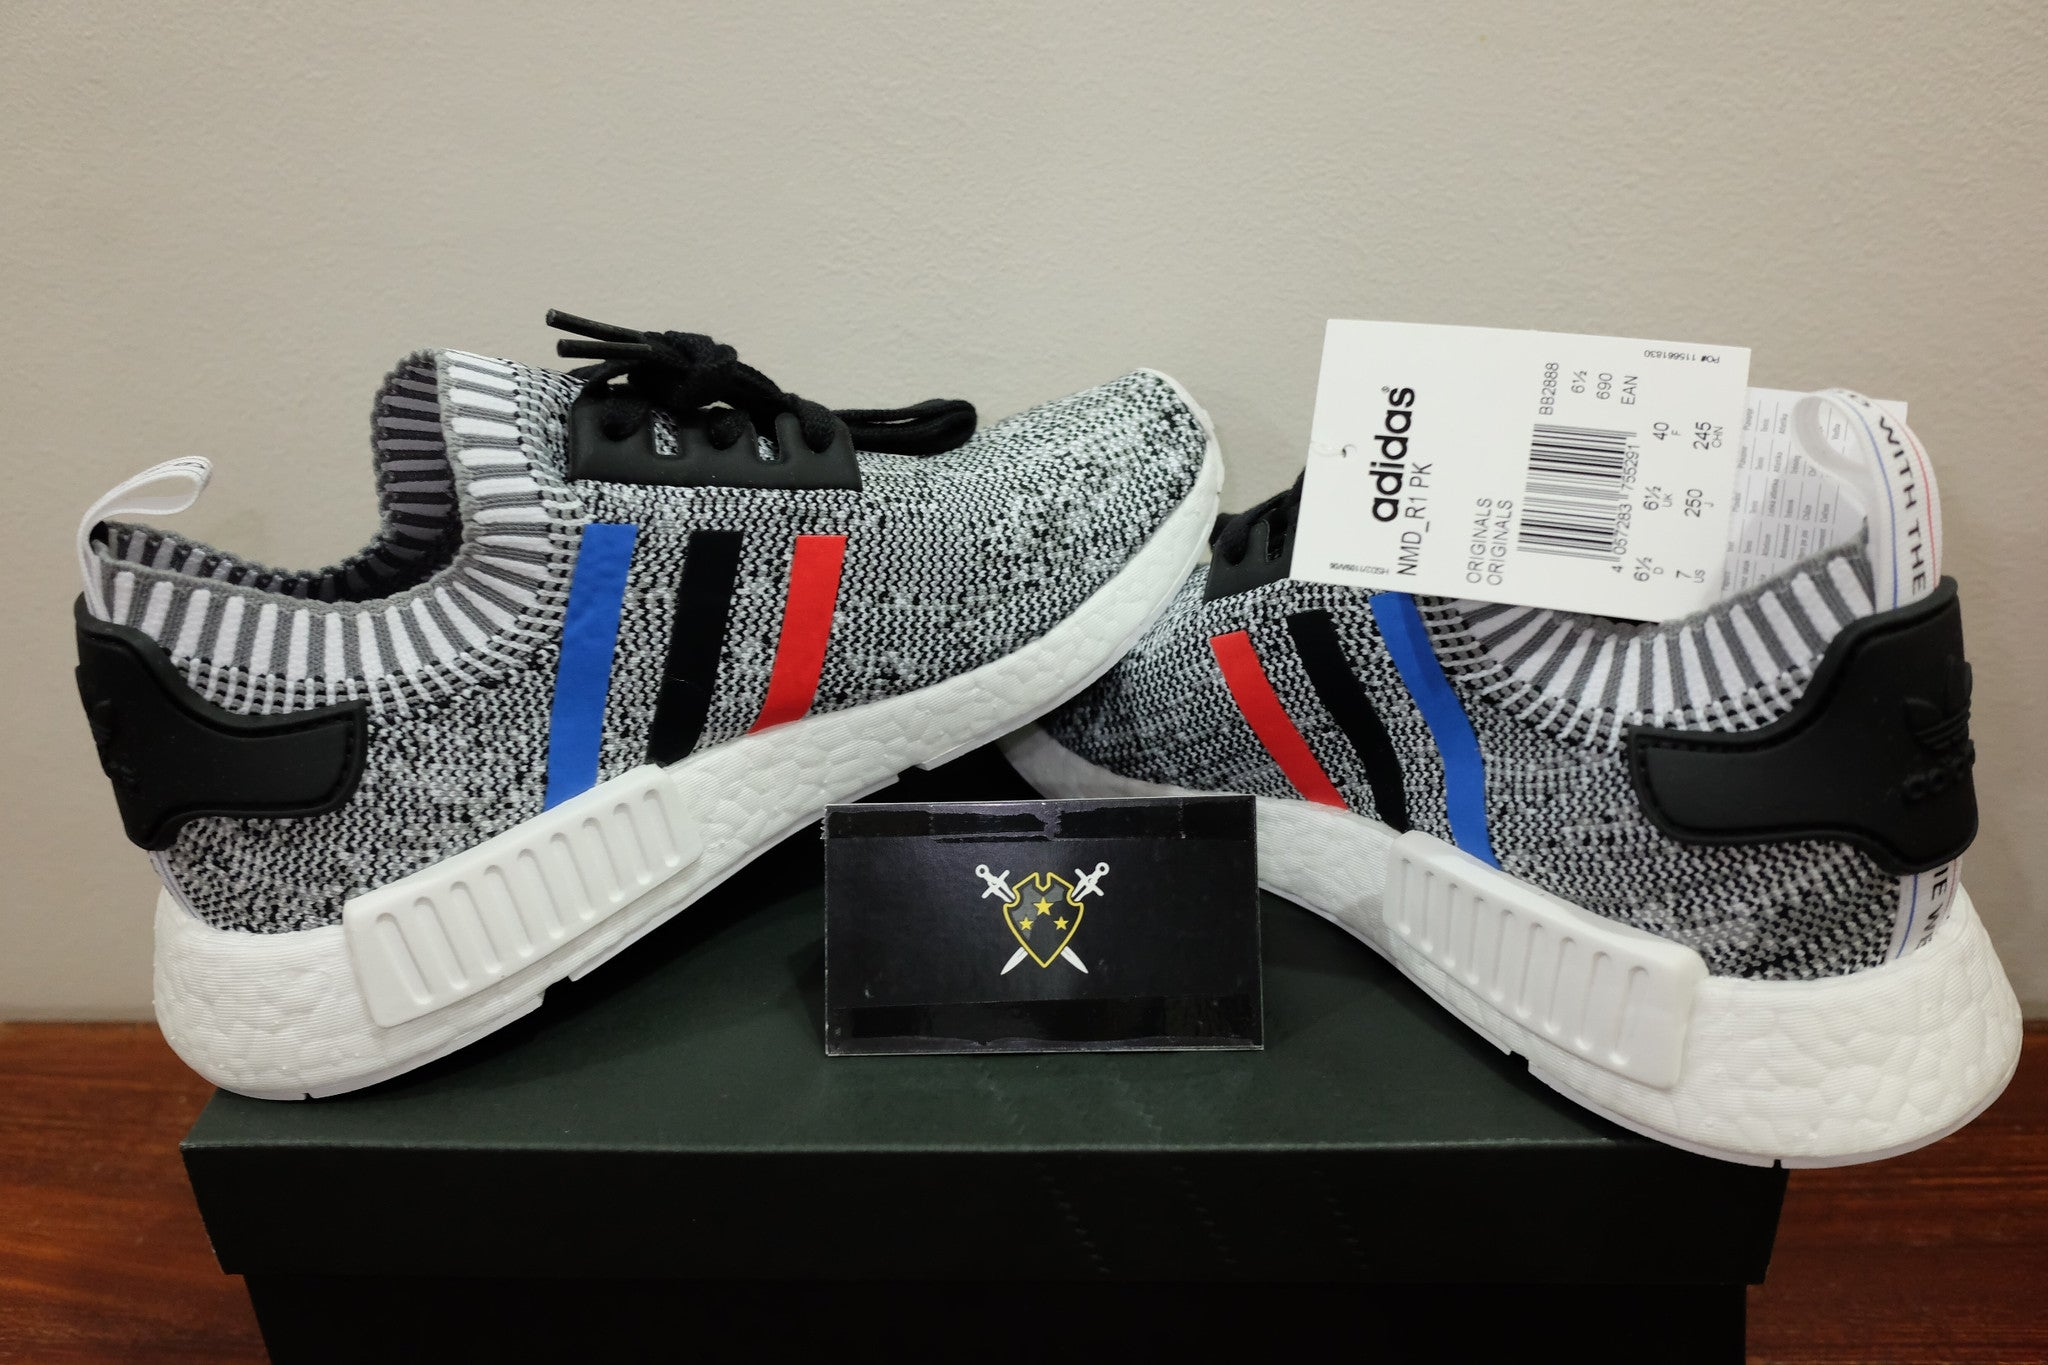 8251bd027c7d1 ... Tri-Color White   adidas Originals NMD R1 Primeknit DarkSole.net (2) ...